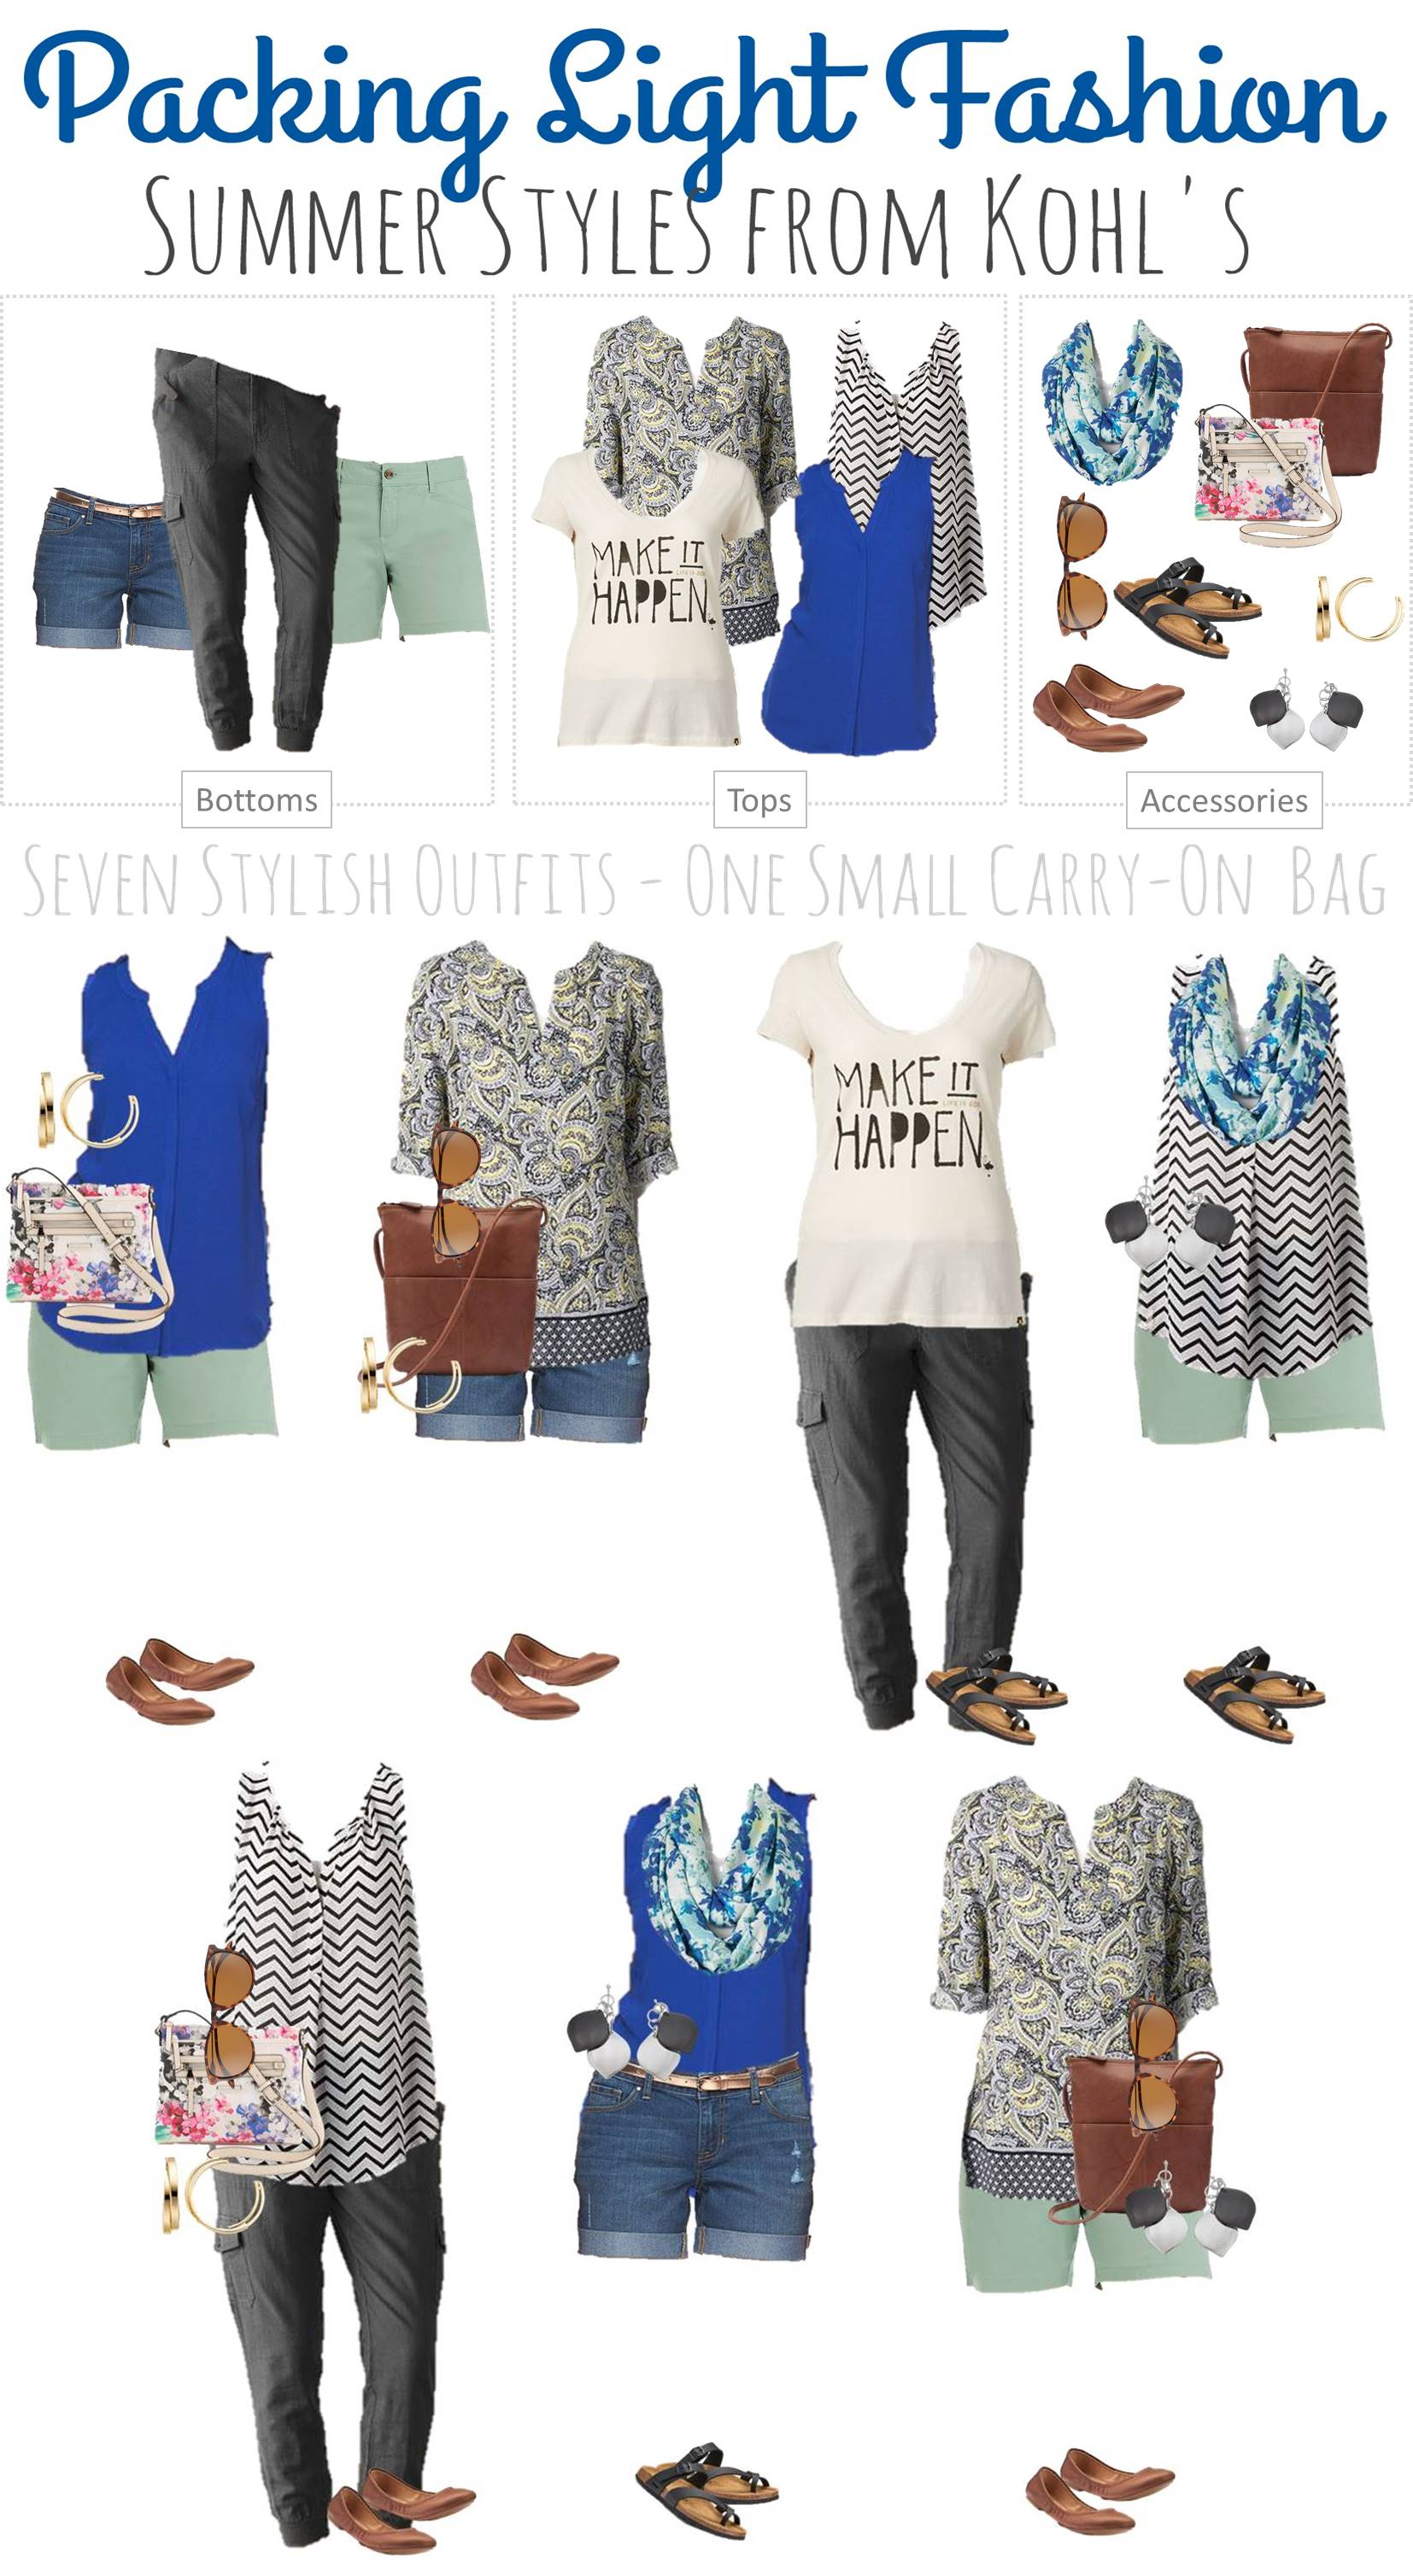 3.27 Packing Light Fashion Board - Summer Styles from Kohls VERTICAL